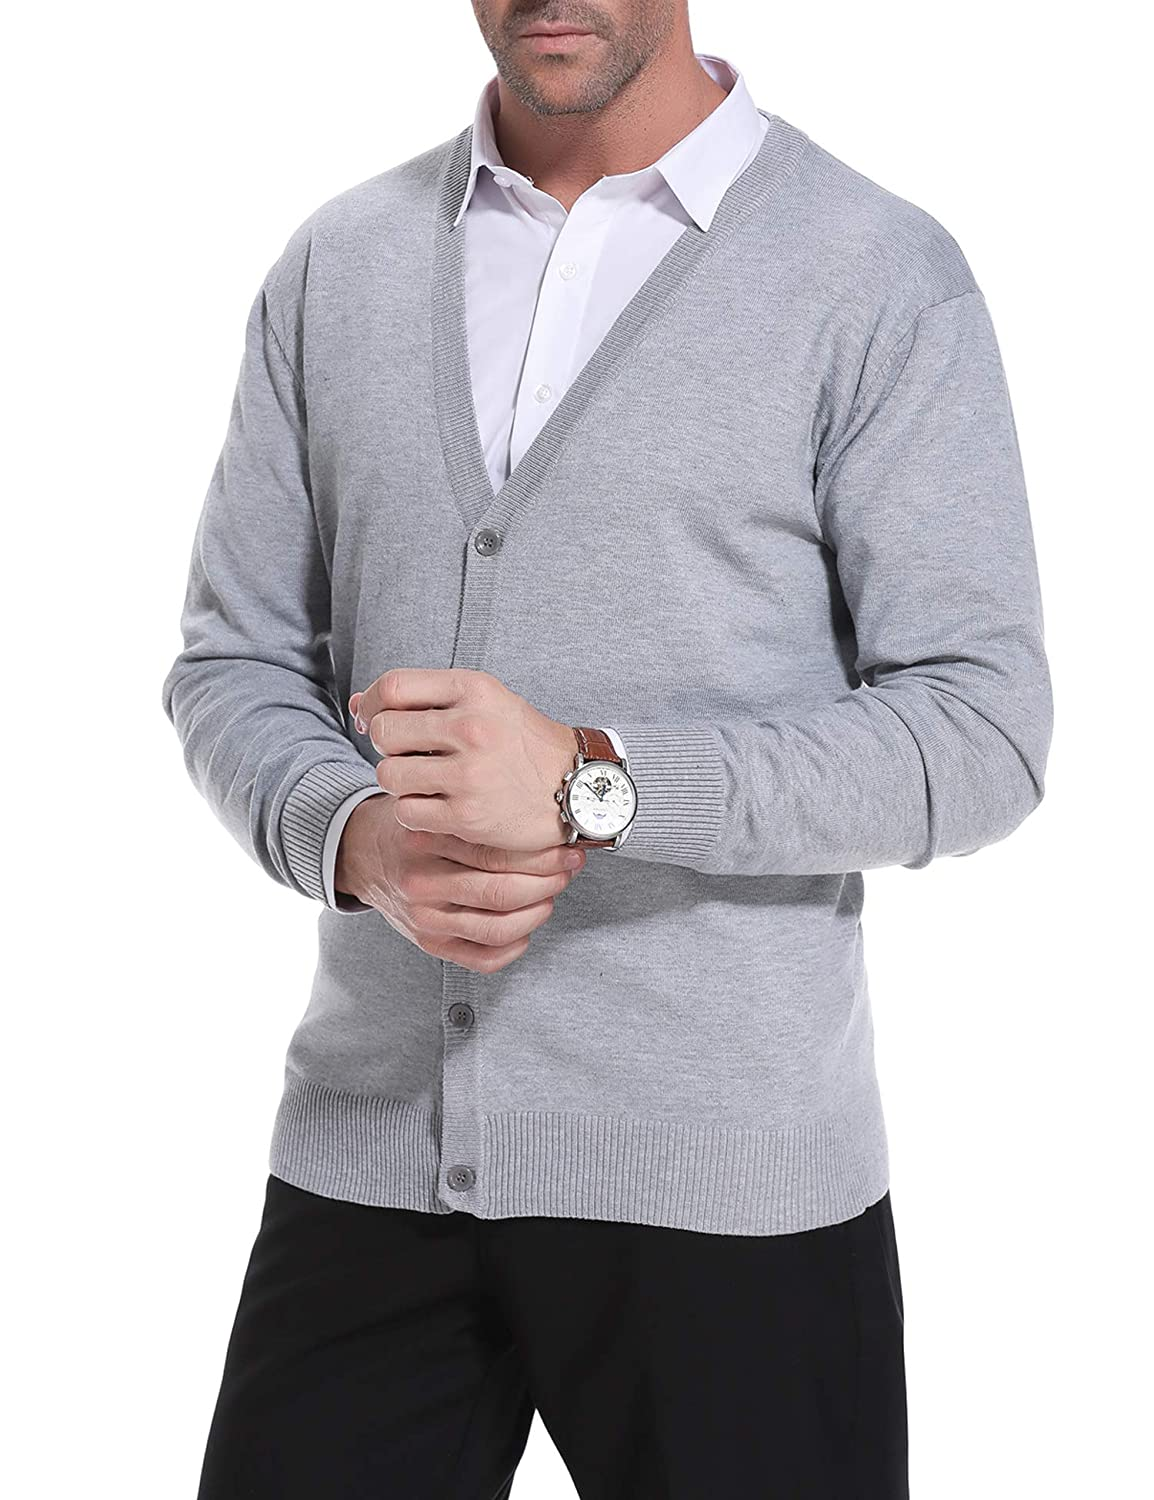 iClosam Mens Casual V-Neck Long Sleeve Slim Fit Knitted Sweater Button Down Cardigan